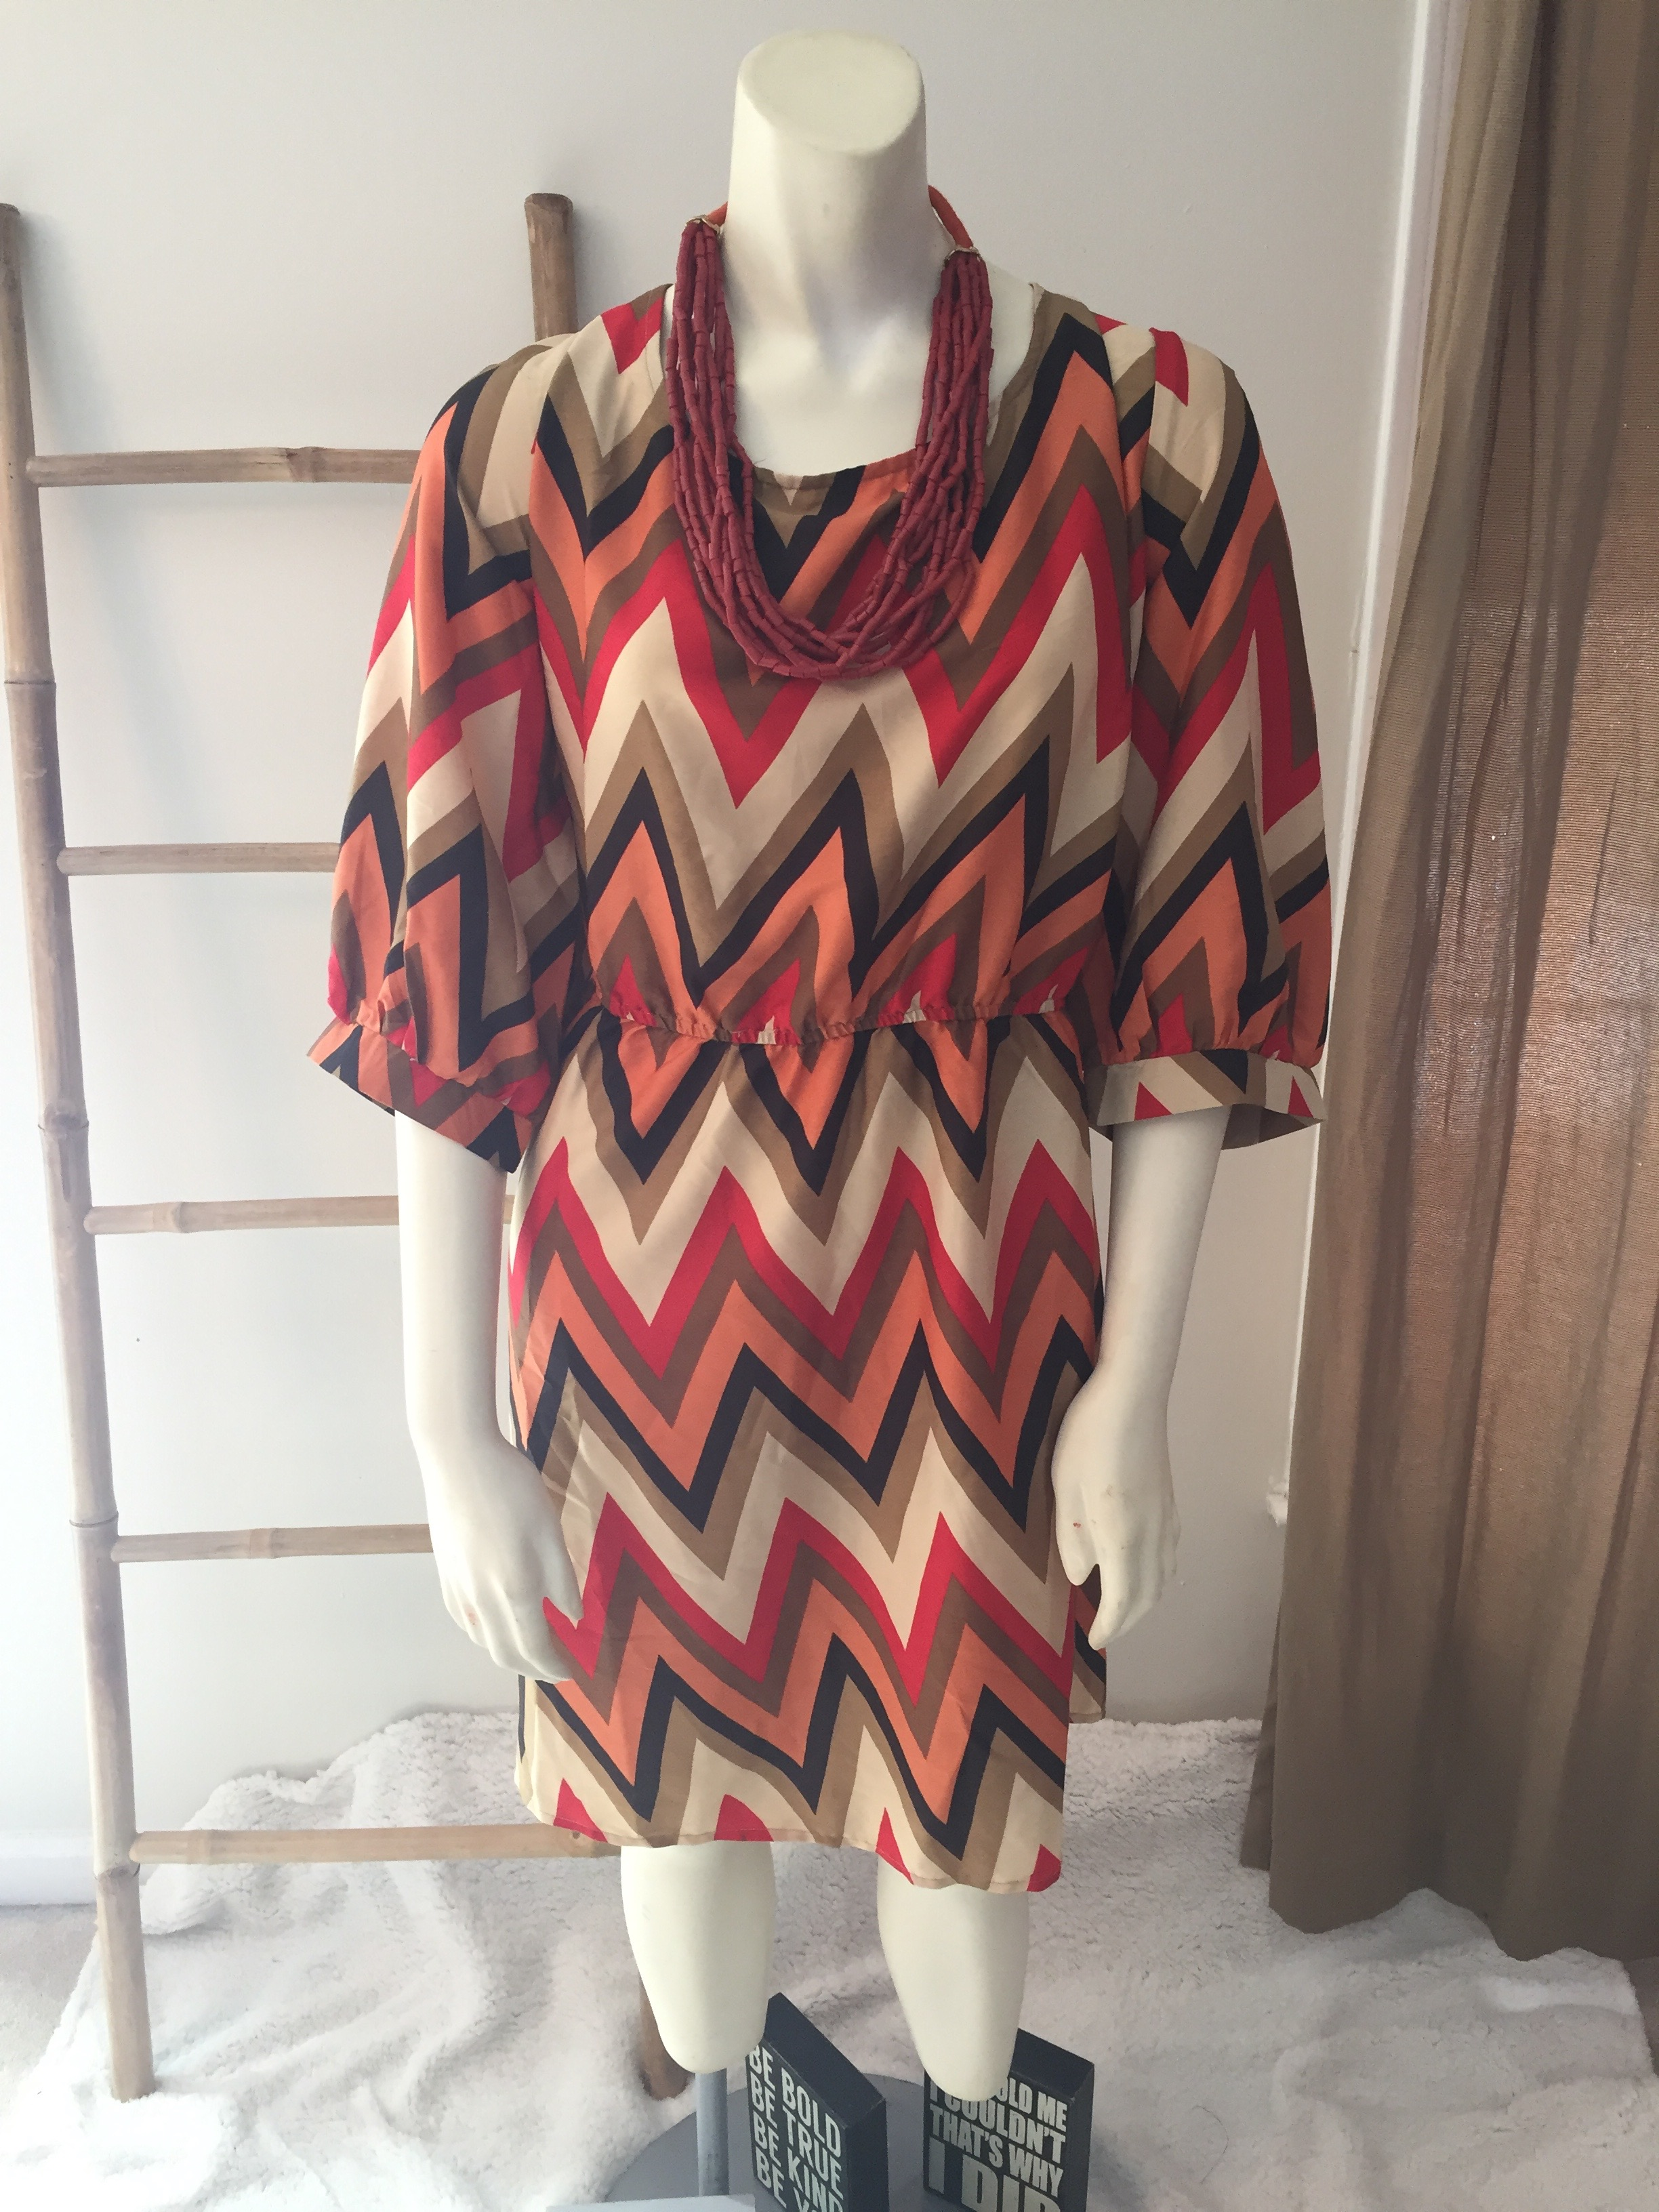 Retro ZigZag Print Dress